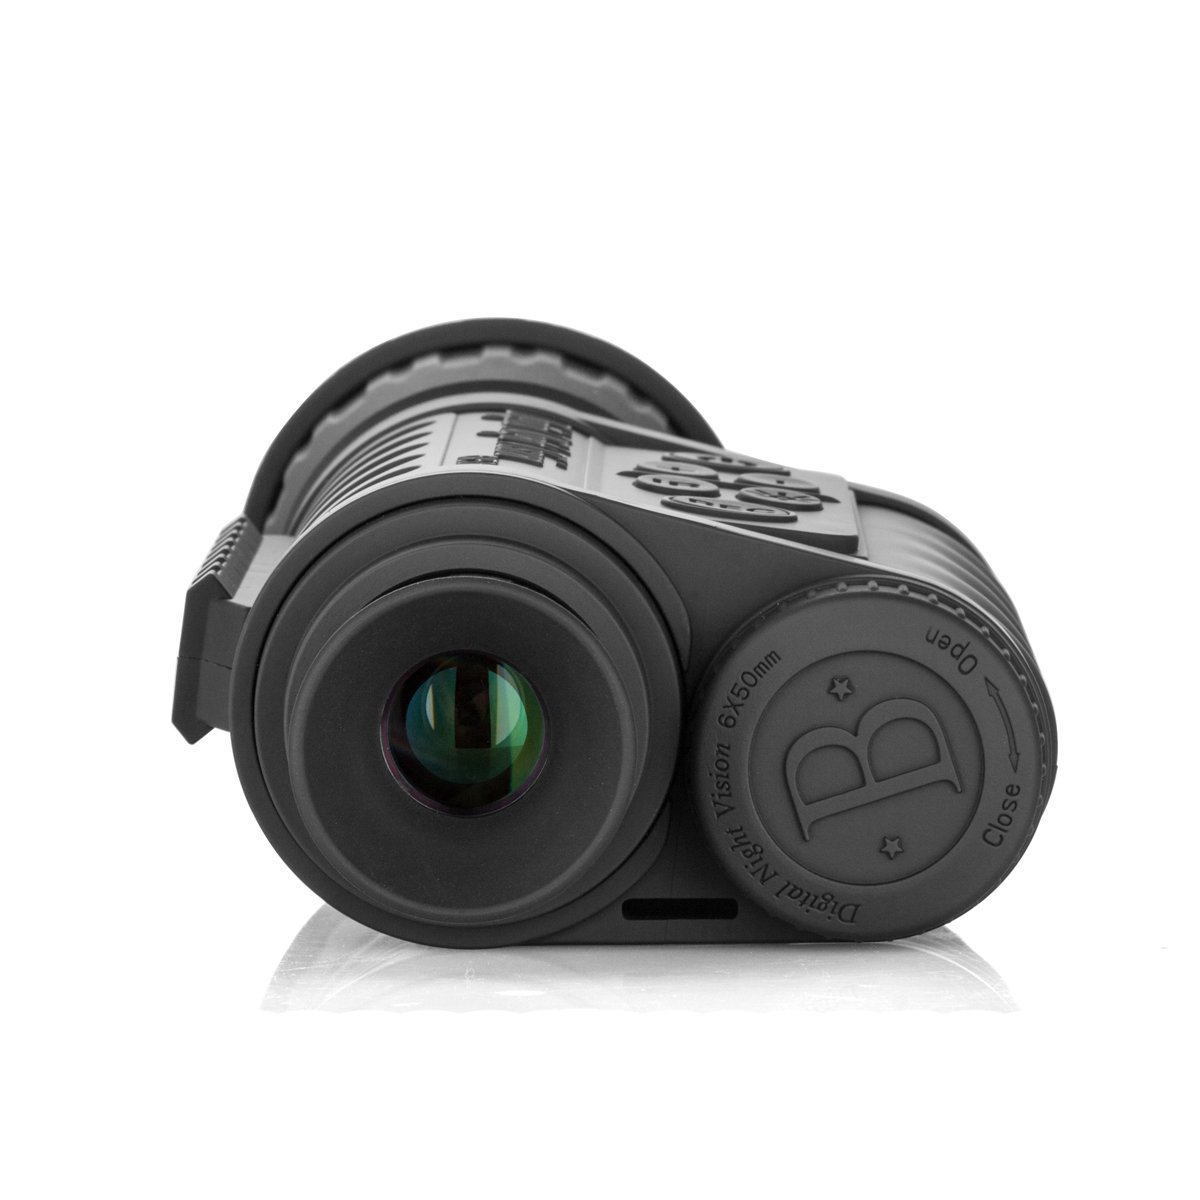 Gemtune WG-50 6x50mm HD Digital Night Vision Monocular with 1.5 inch TFT LCD Camera and Camcorder Function Takes 5mp Photo 720p Video from 350m Distance for night watching or observation by GemTune (Image #6)